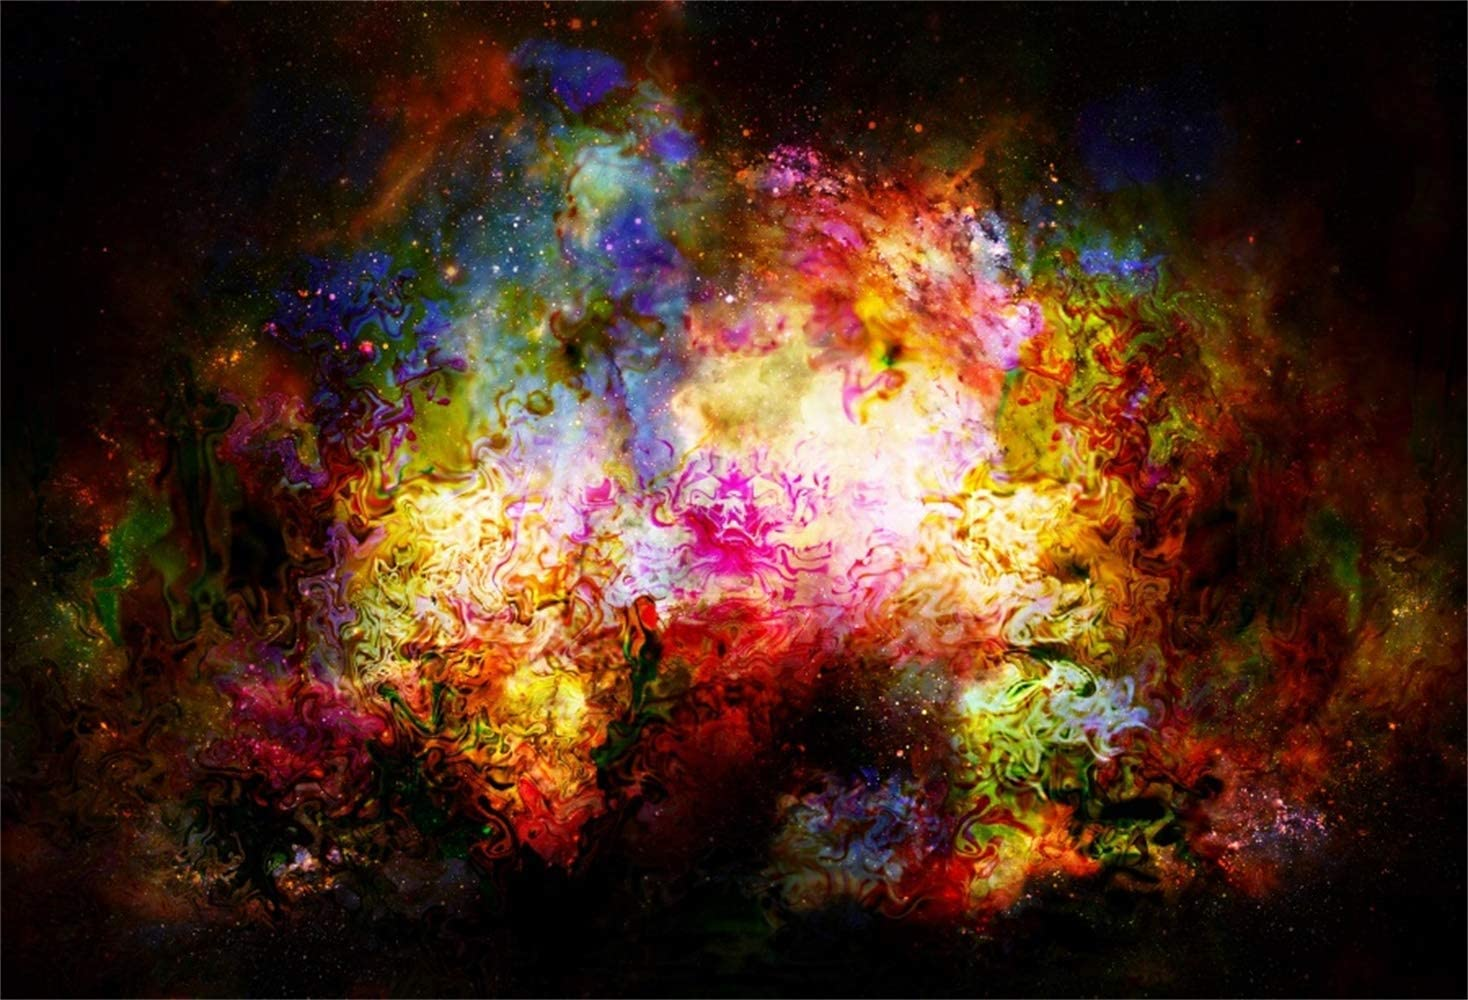 Dreamy Abstract Nebula Backdrop 8x6.5ft Polyester Mysterious Universe Outer Space Grunge Colorful Starry Sky Neon Background Dreamland Child Kids Adult Portrait Shoot Studio Props Wallpaper